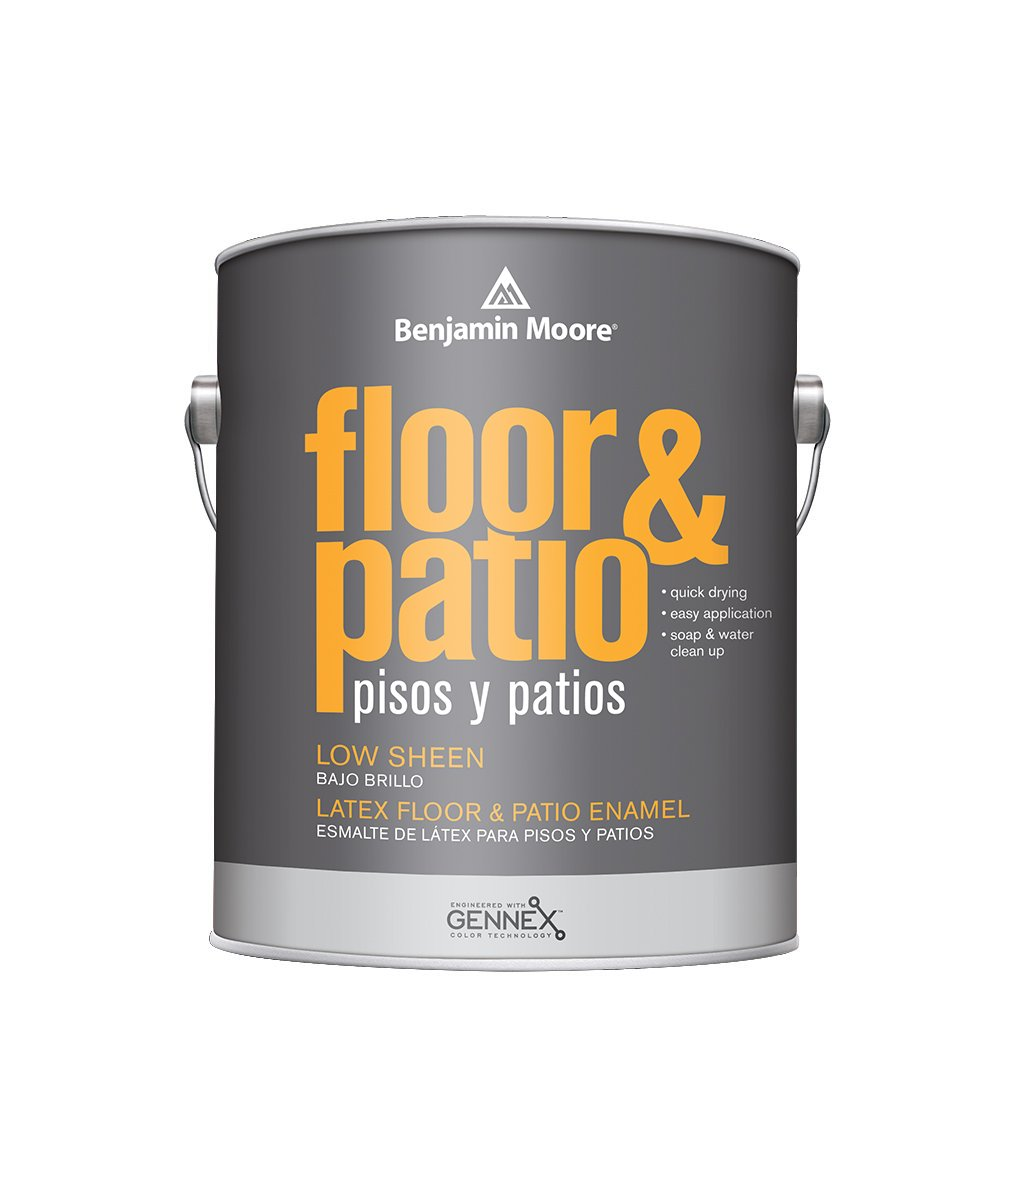 Benjamin Moore floor and patio low sheen Interior Paint available at JC Licht.